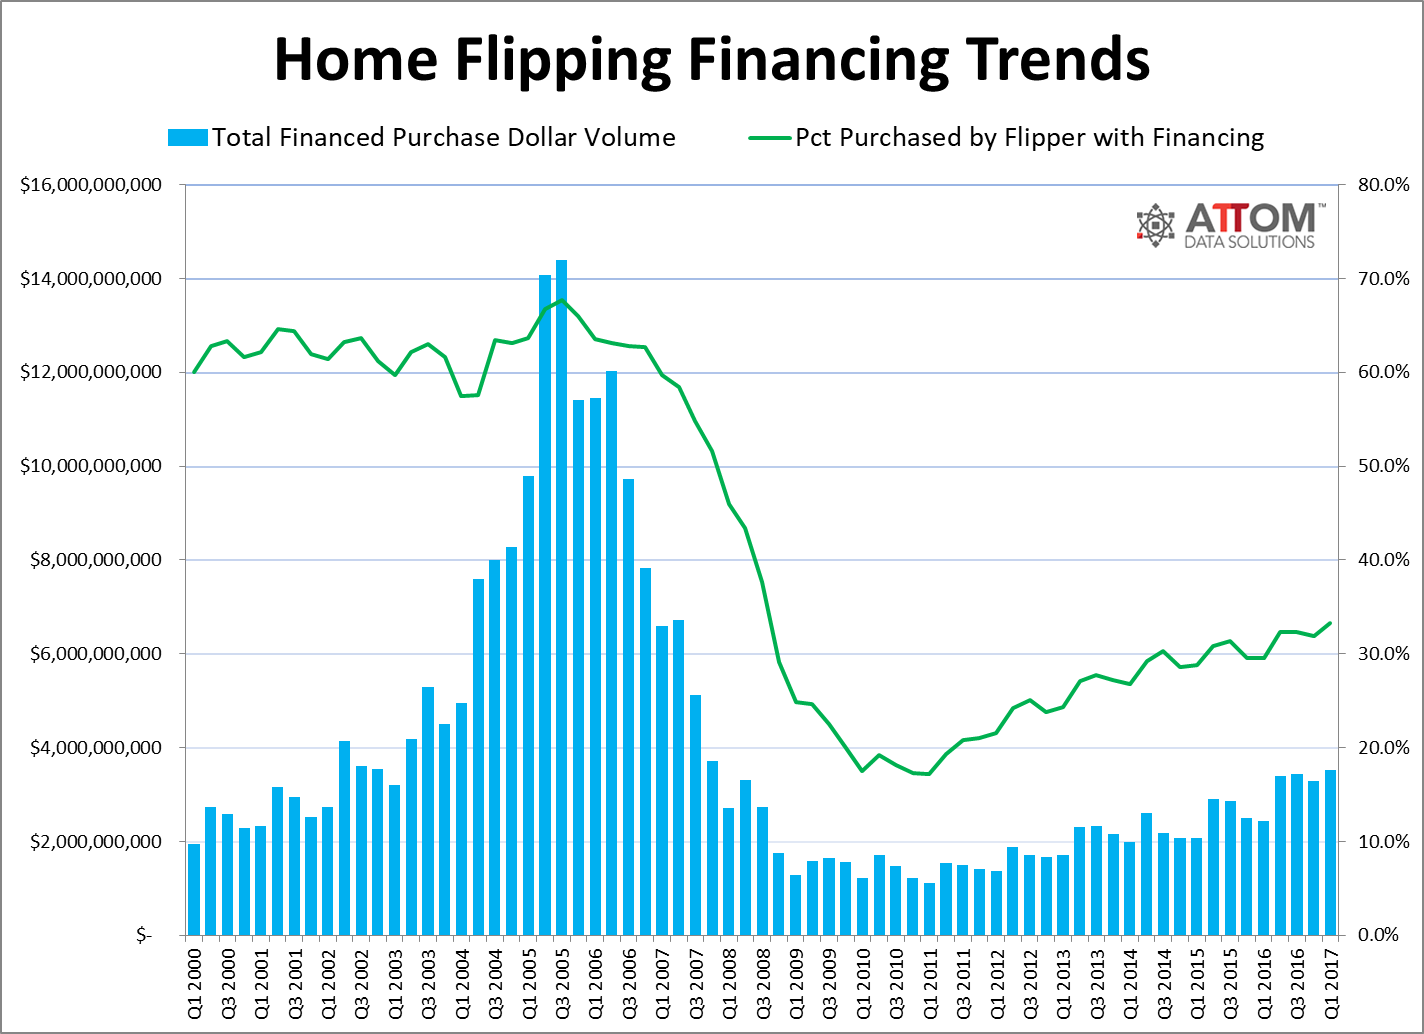 Home Flipping Trends